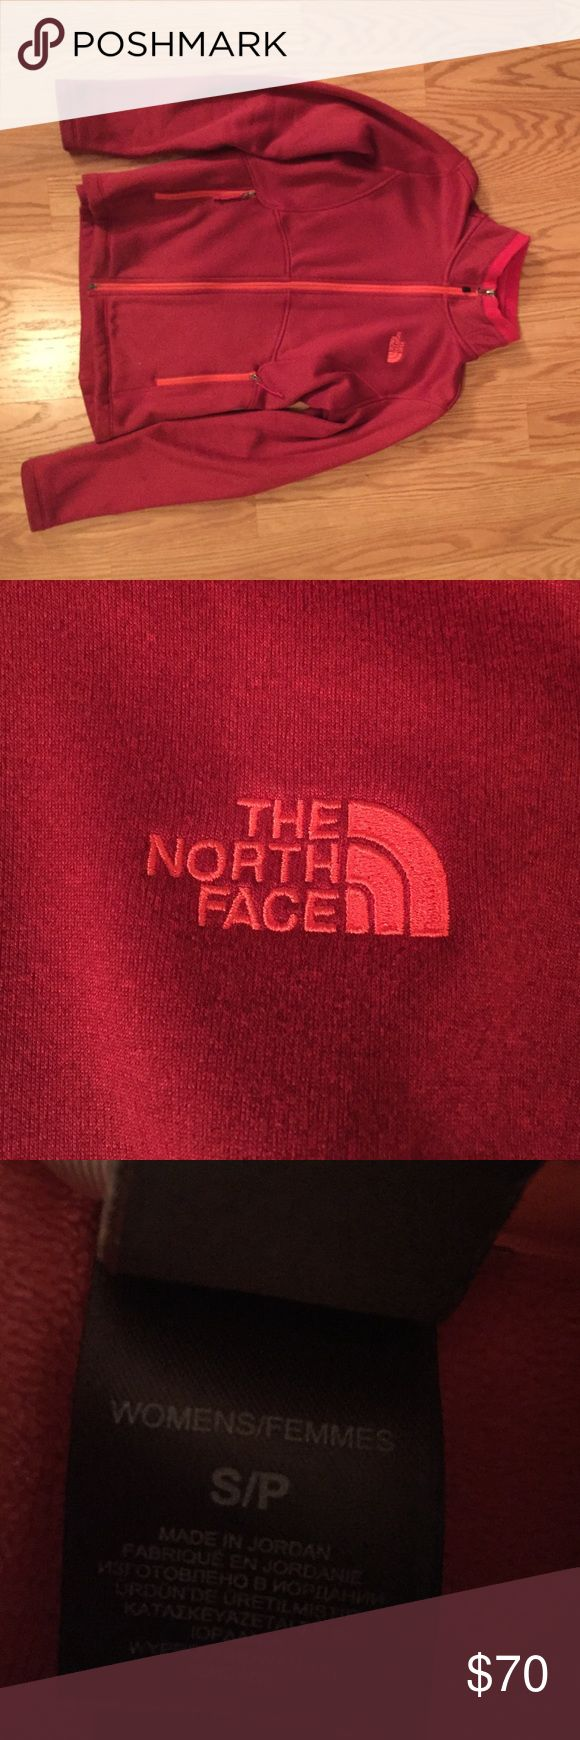 A northface jacket A red north face jacket with a pink logo, has slight wearing on the end of the sleeve. North Face Jackets & Coats